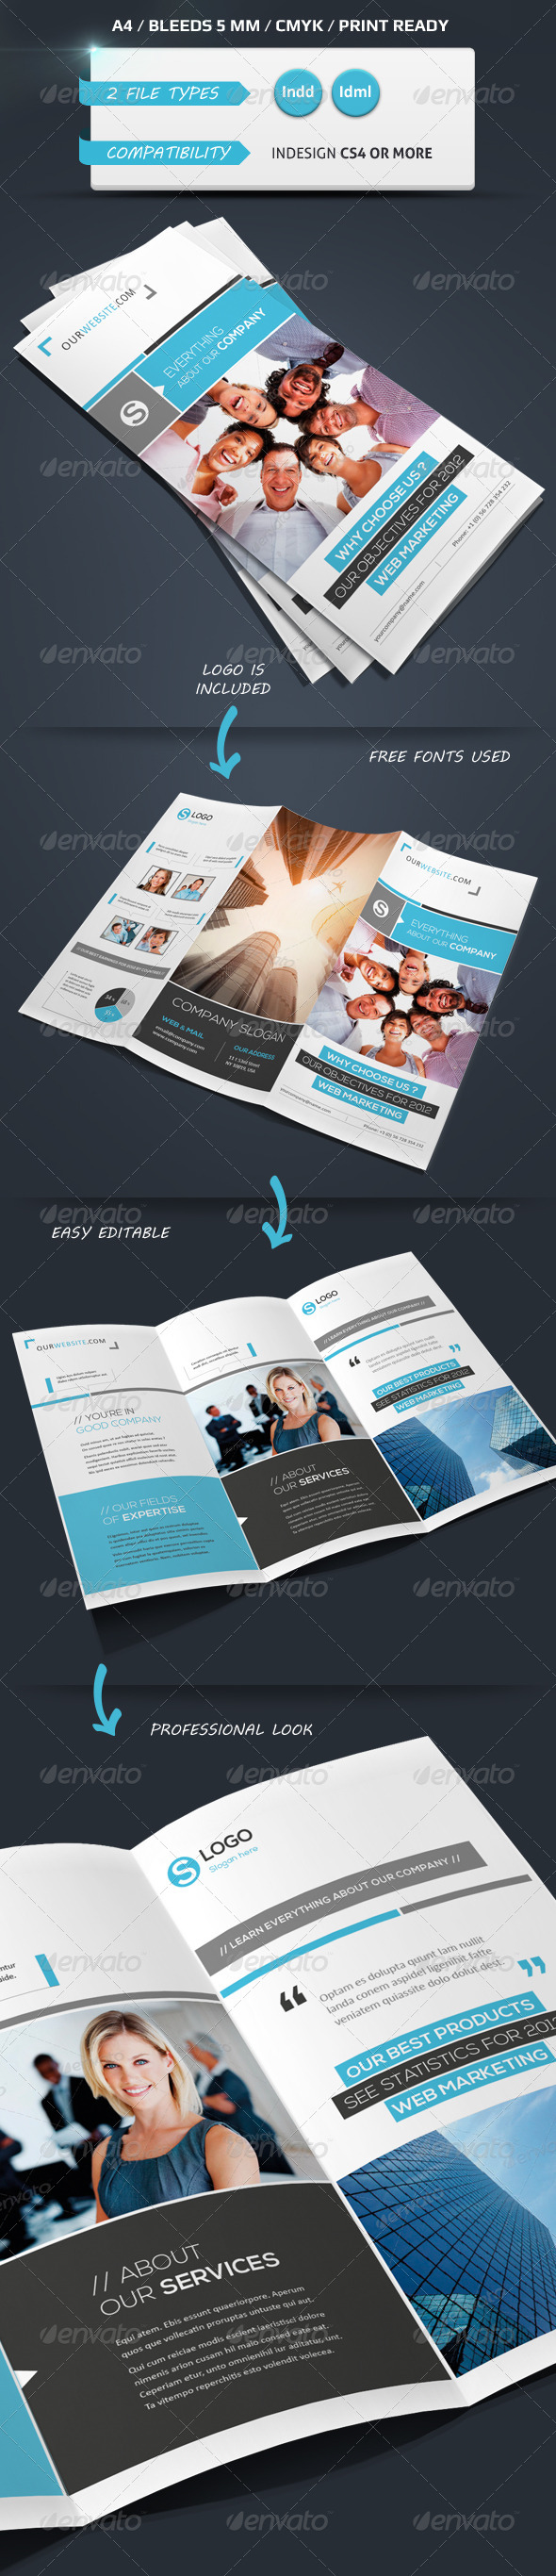 Modern & Corporate Trifold Brochure A4 - Brochures Print Templates